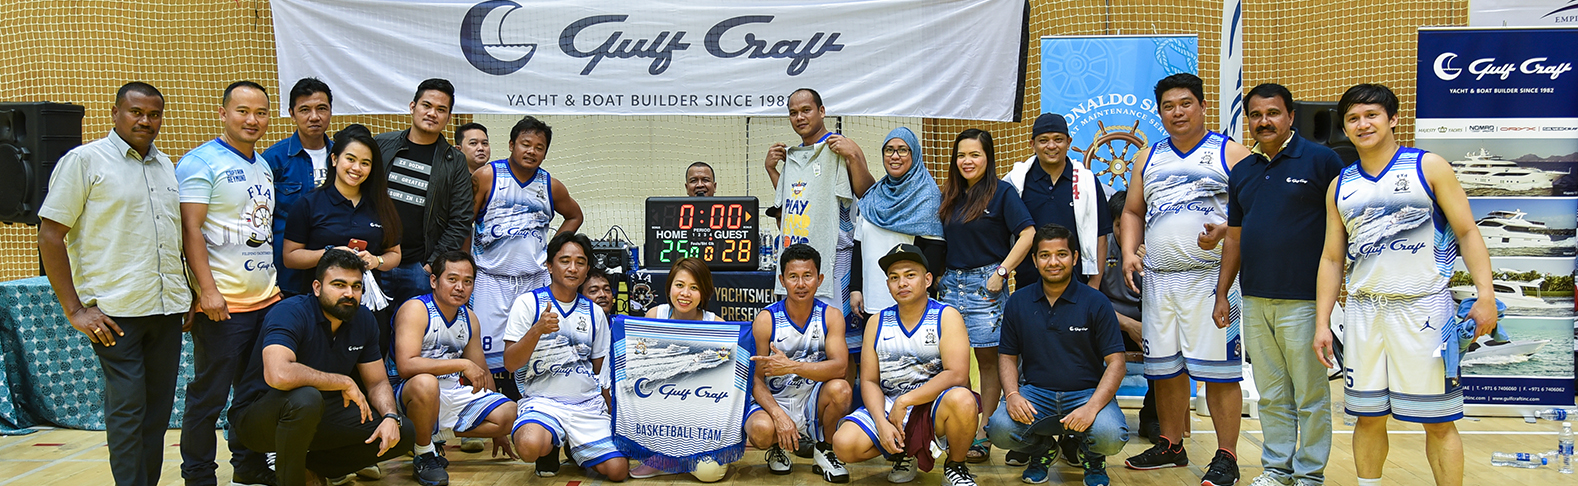 Gulf Craft, FYA Basketball